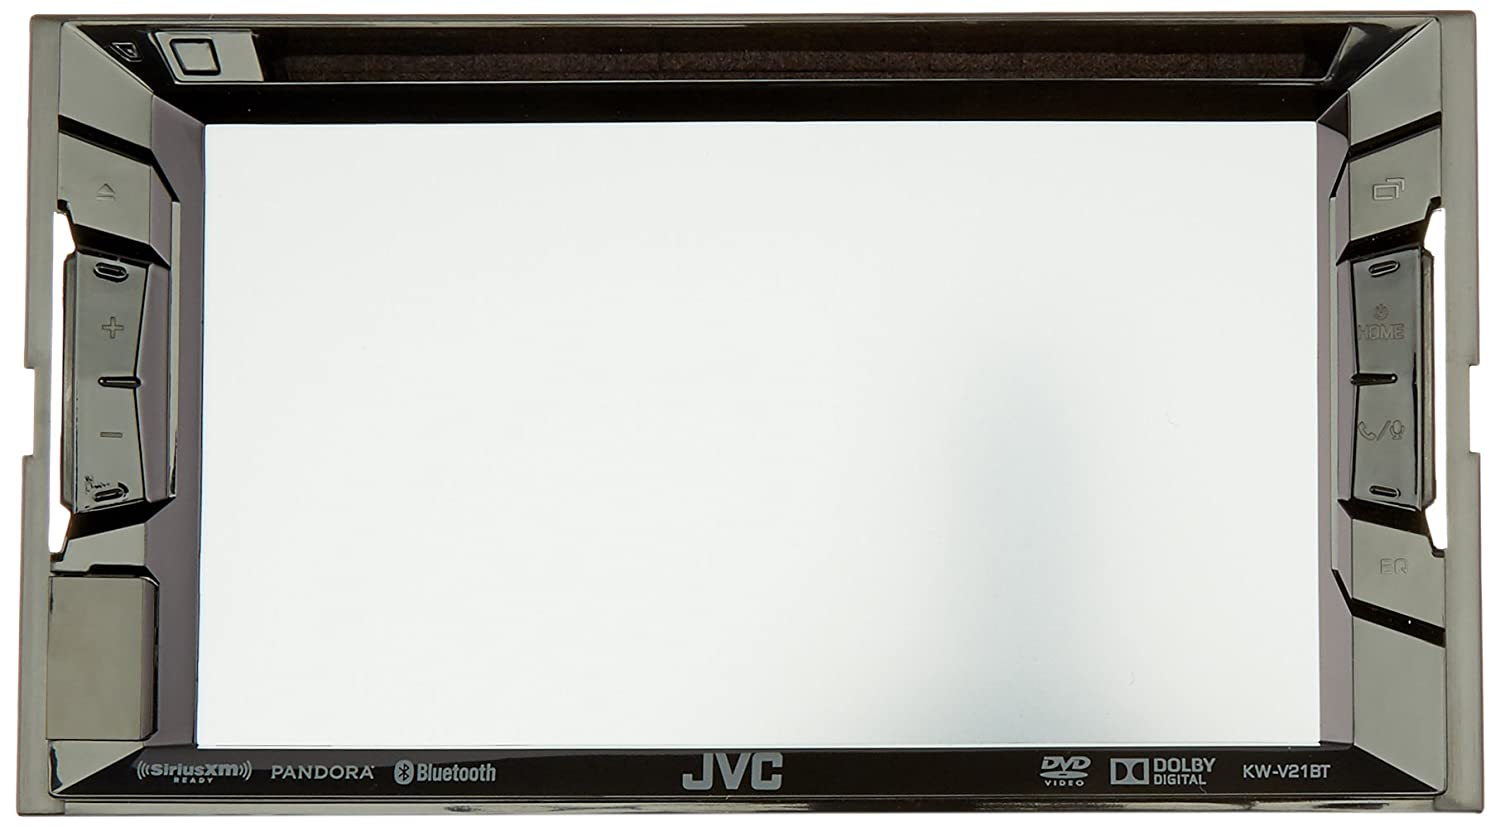 amazon com jvc kwv21bt 6 1 double din car stereo video receiver amazon com jvc kwv21bt 6 1 double din car stereo video receiver car electronics